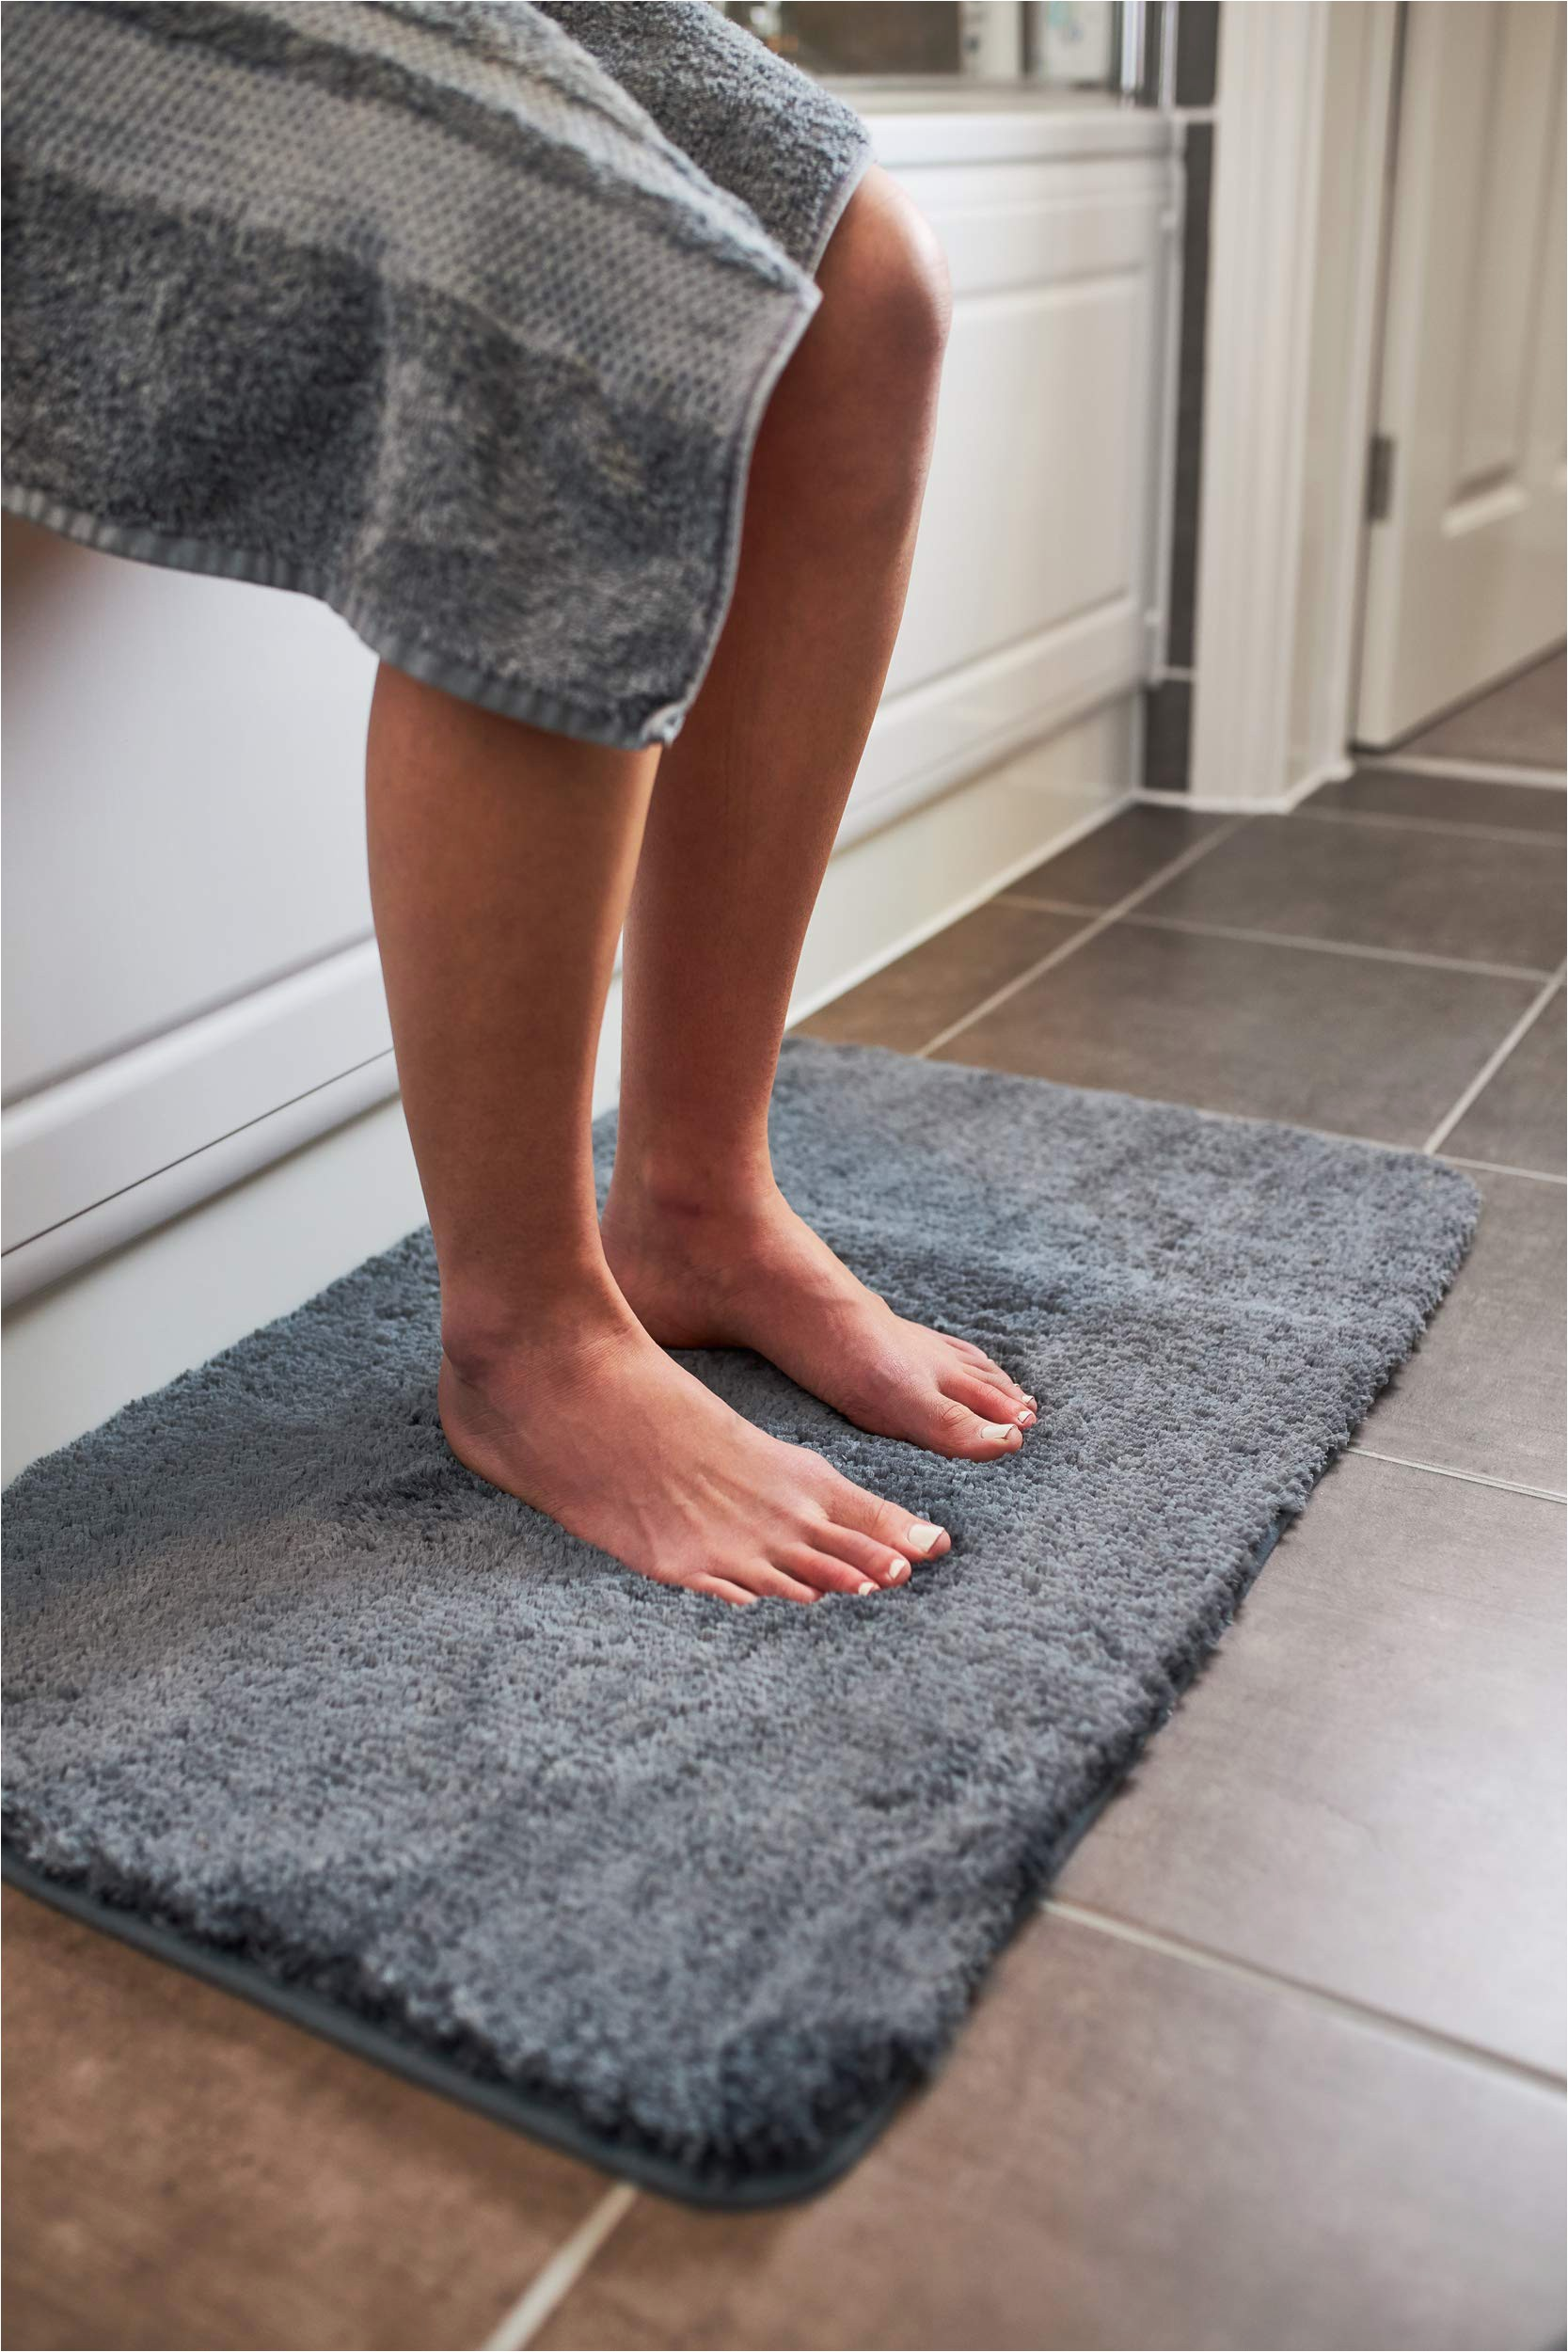 Dark Gray Bath Rugs Luxury Grey Bath Mat Microfiber Non Slip Bath Rug with Super soft Absorbent Dry Fast Design for Bath and Shower